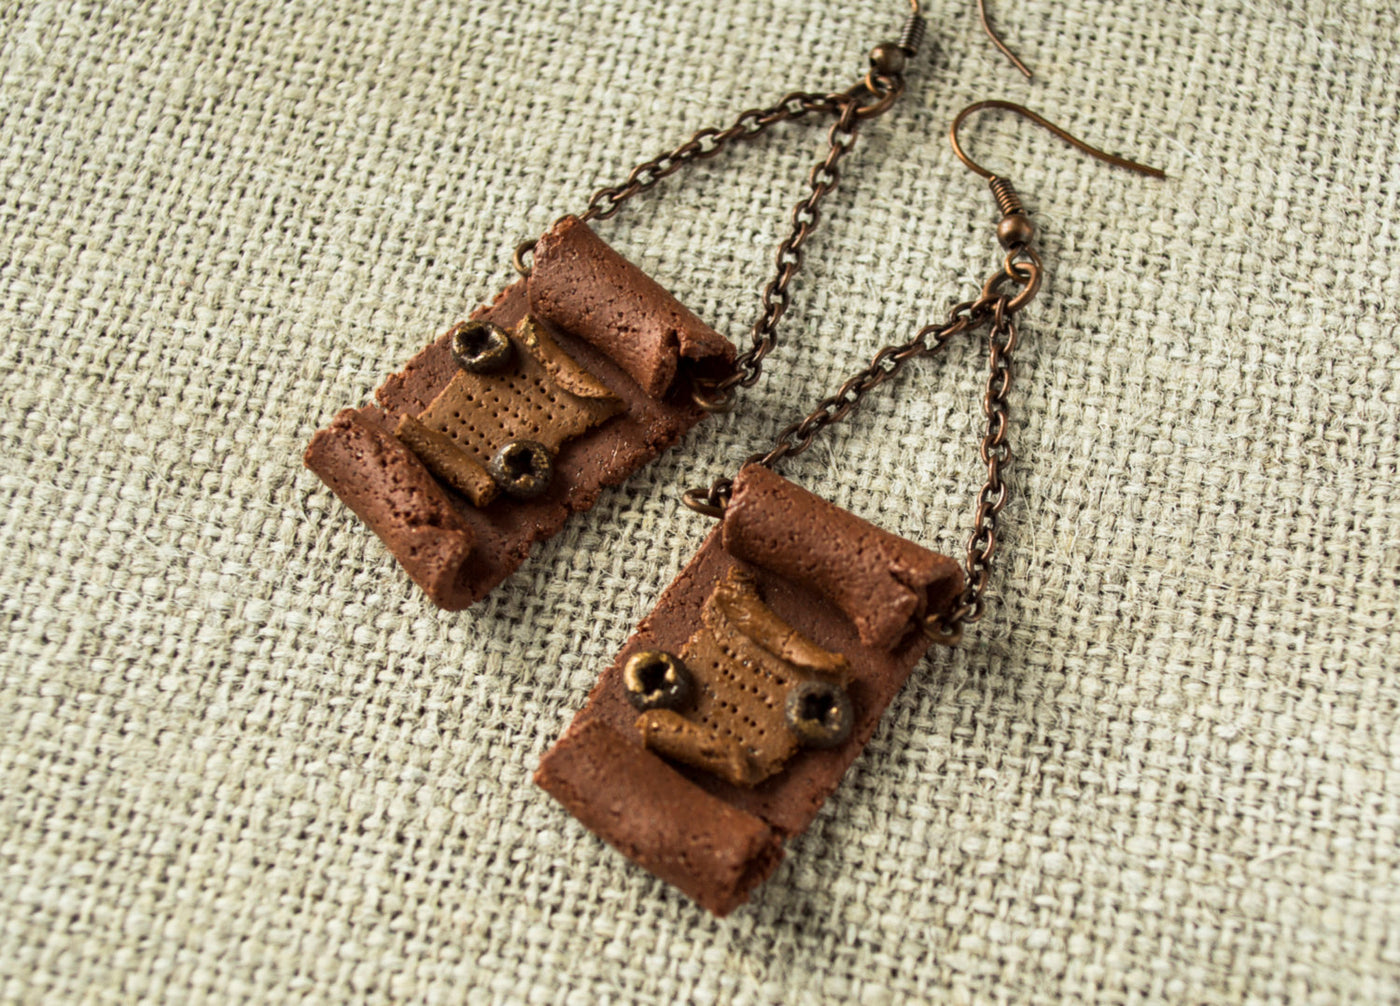 Clay Scrolls Boho Gypsy Chain Rustic Bohemian Gypsy Earrings, Handmade Ancient Steampunk Manuscript Historical Rustic Unique Earrings